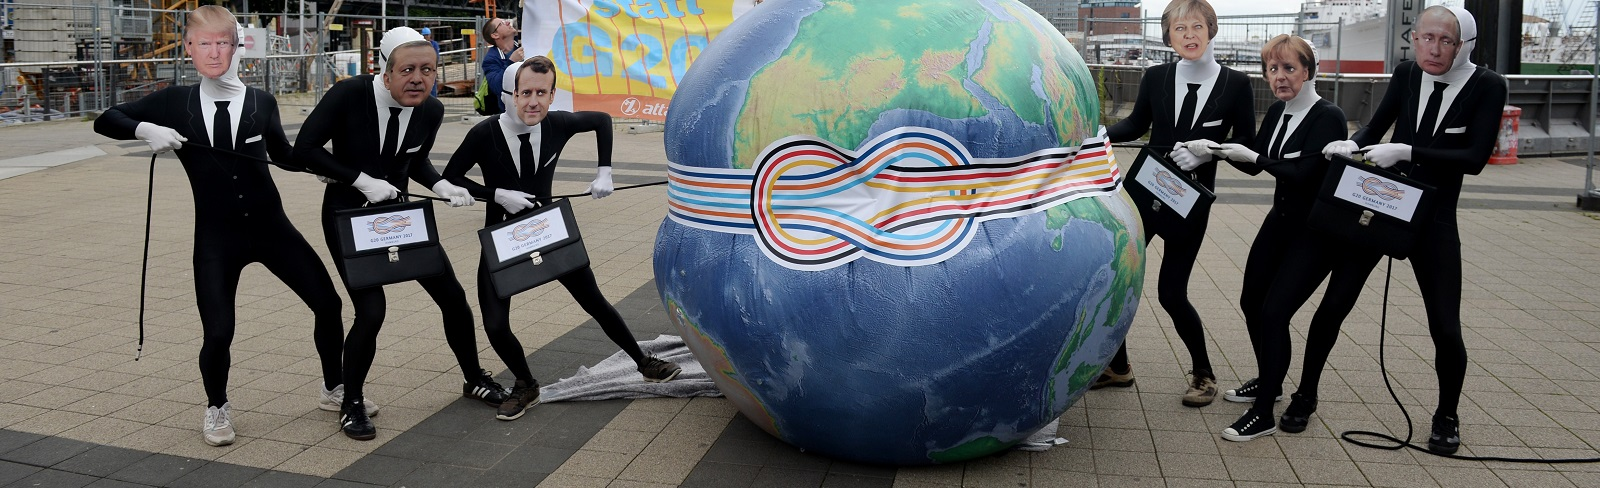 Protestors in Hamburg ahead of the G20 Summit (Photo: Morris MacMatzen/Getty Images)